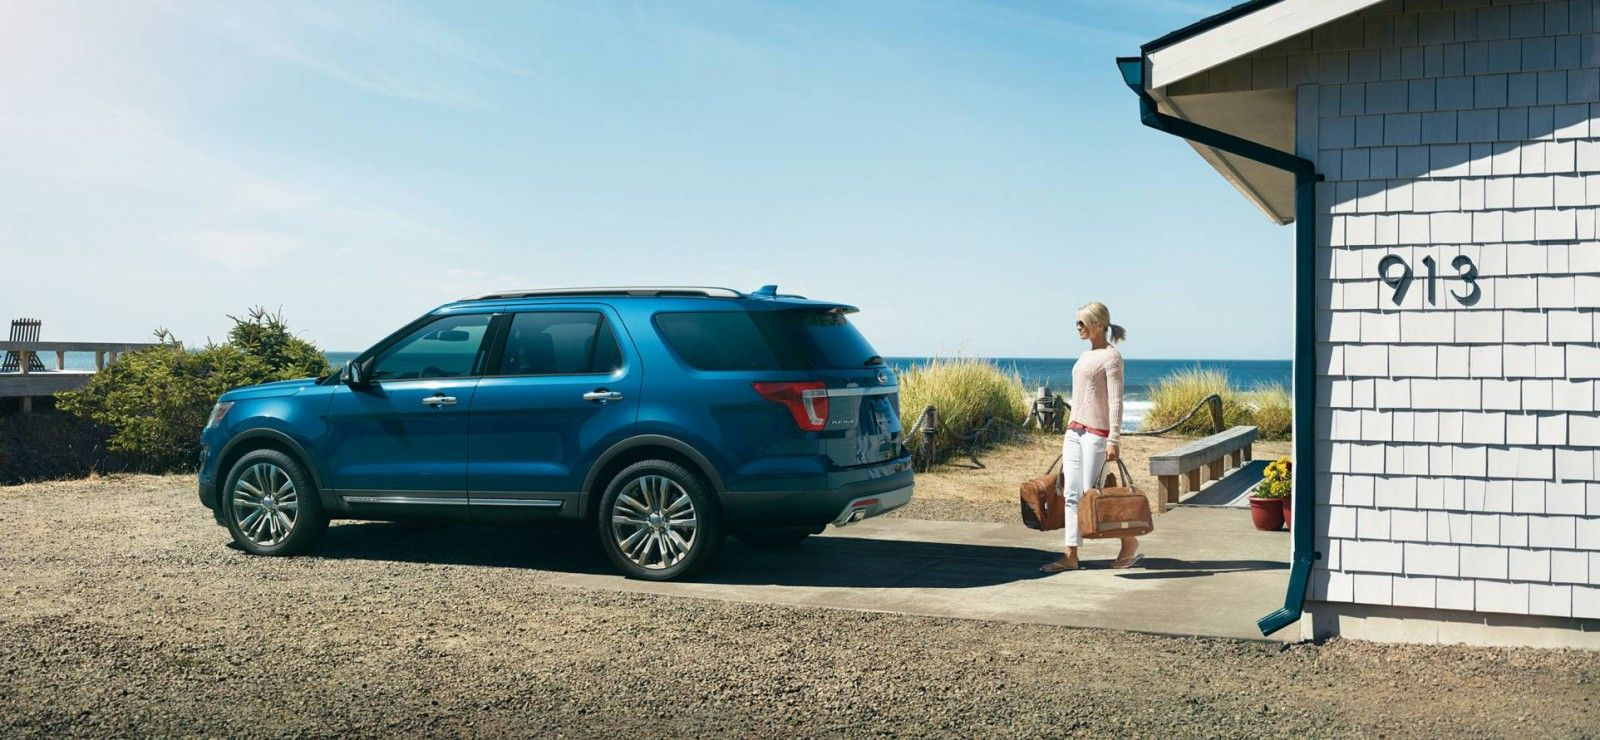 2016 Ford Explorer Colors Ford explorer, 2020 ford